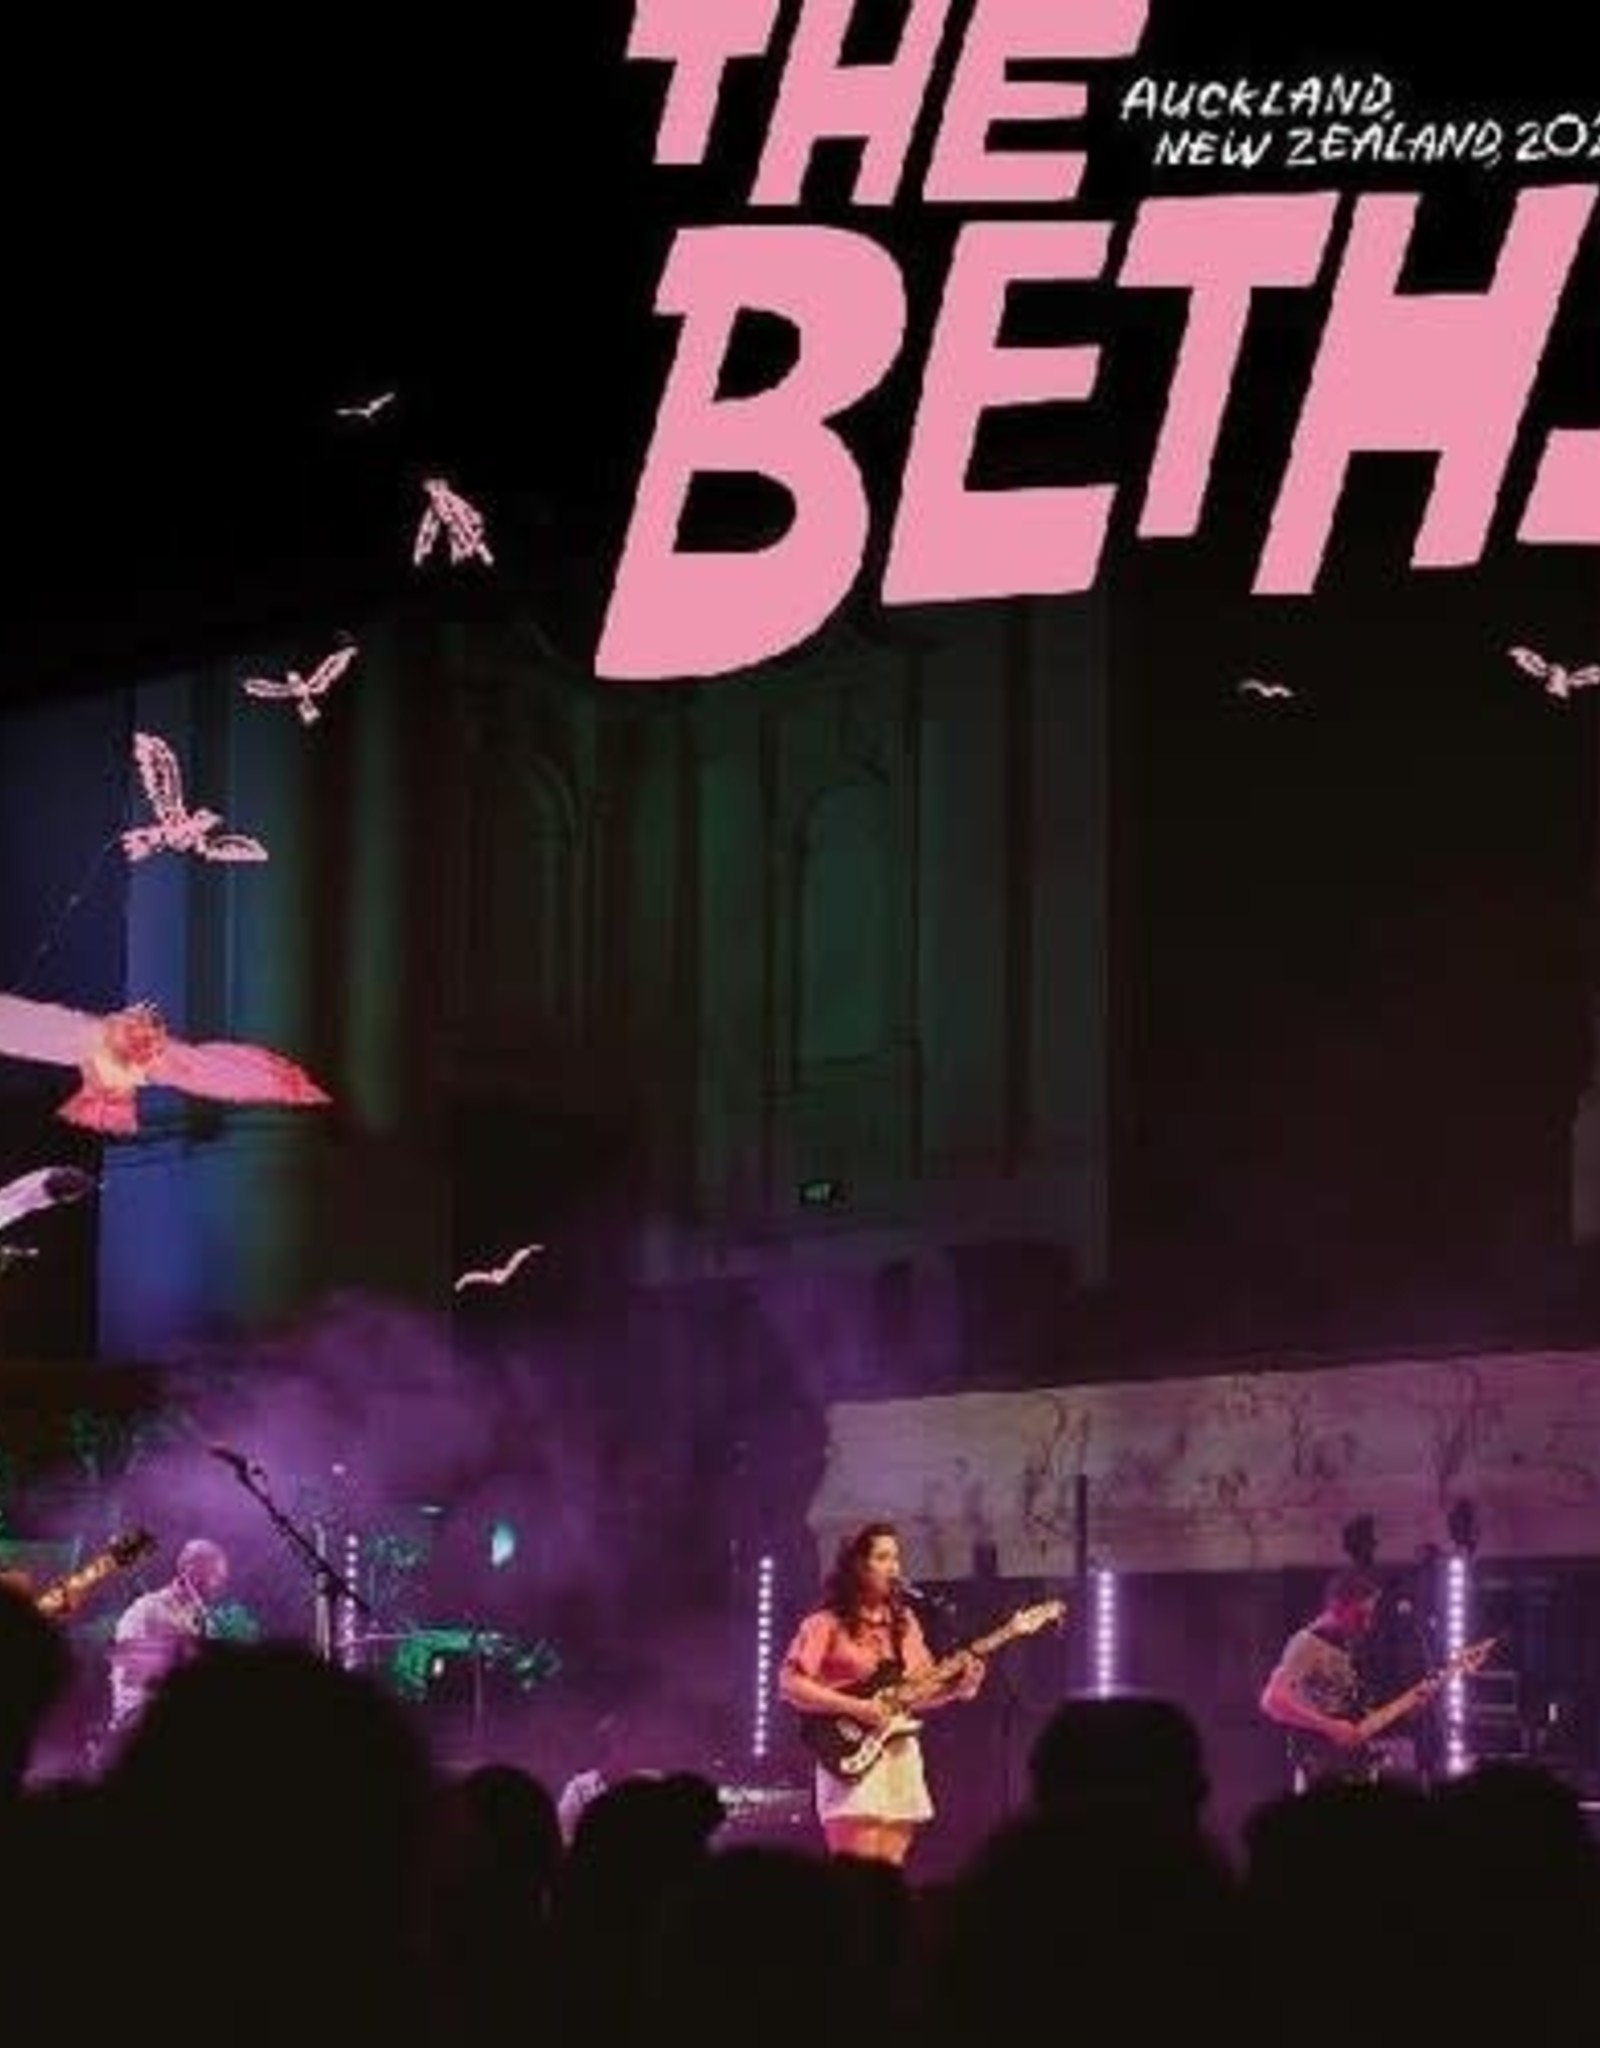 The Beths - Auckland, New Zealand 2020